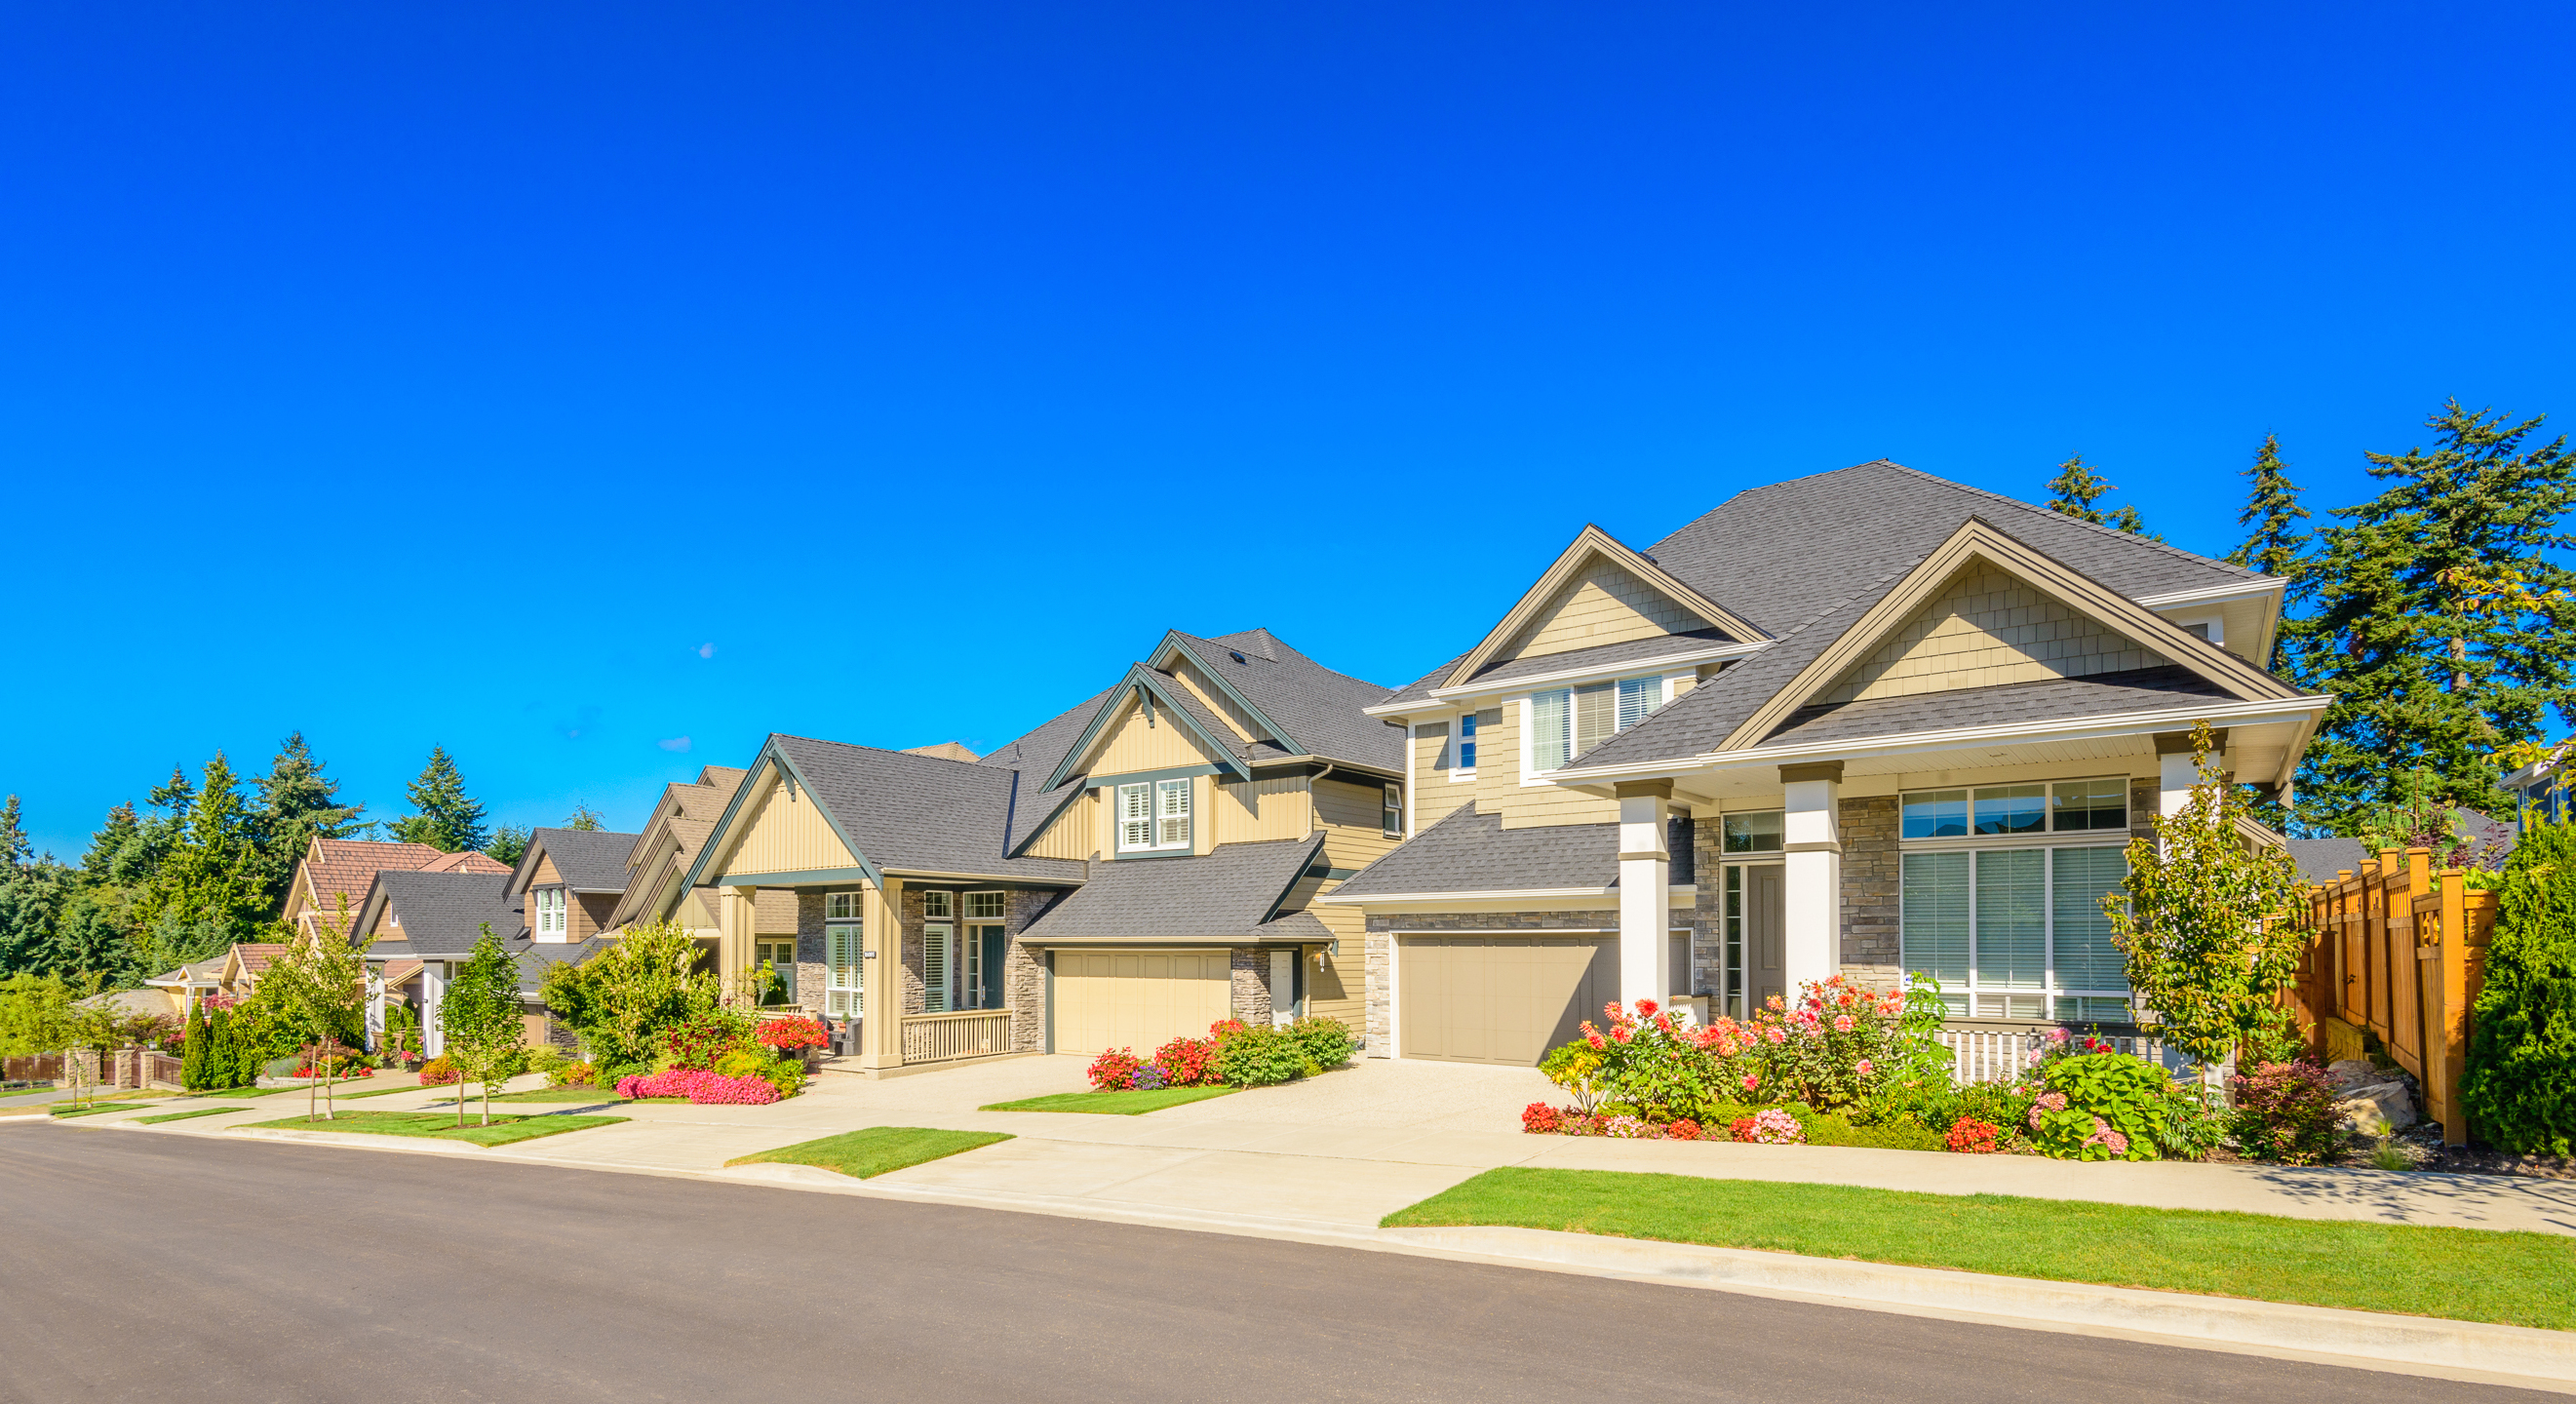 Particular Sale San Antonio Houses Sale San Anotonio Texas To Homes Sale Houses Tennessee Sale San Antonio Houses Sale Sale Georgia Houses To Homes curbed Houses For Sale In